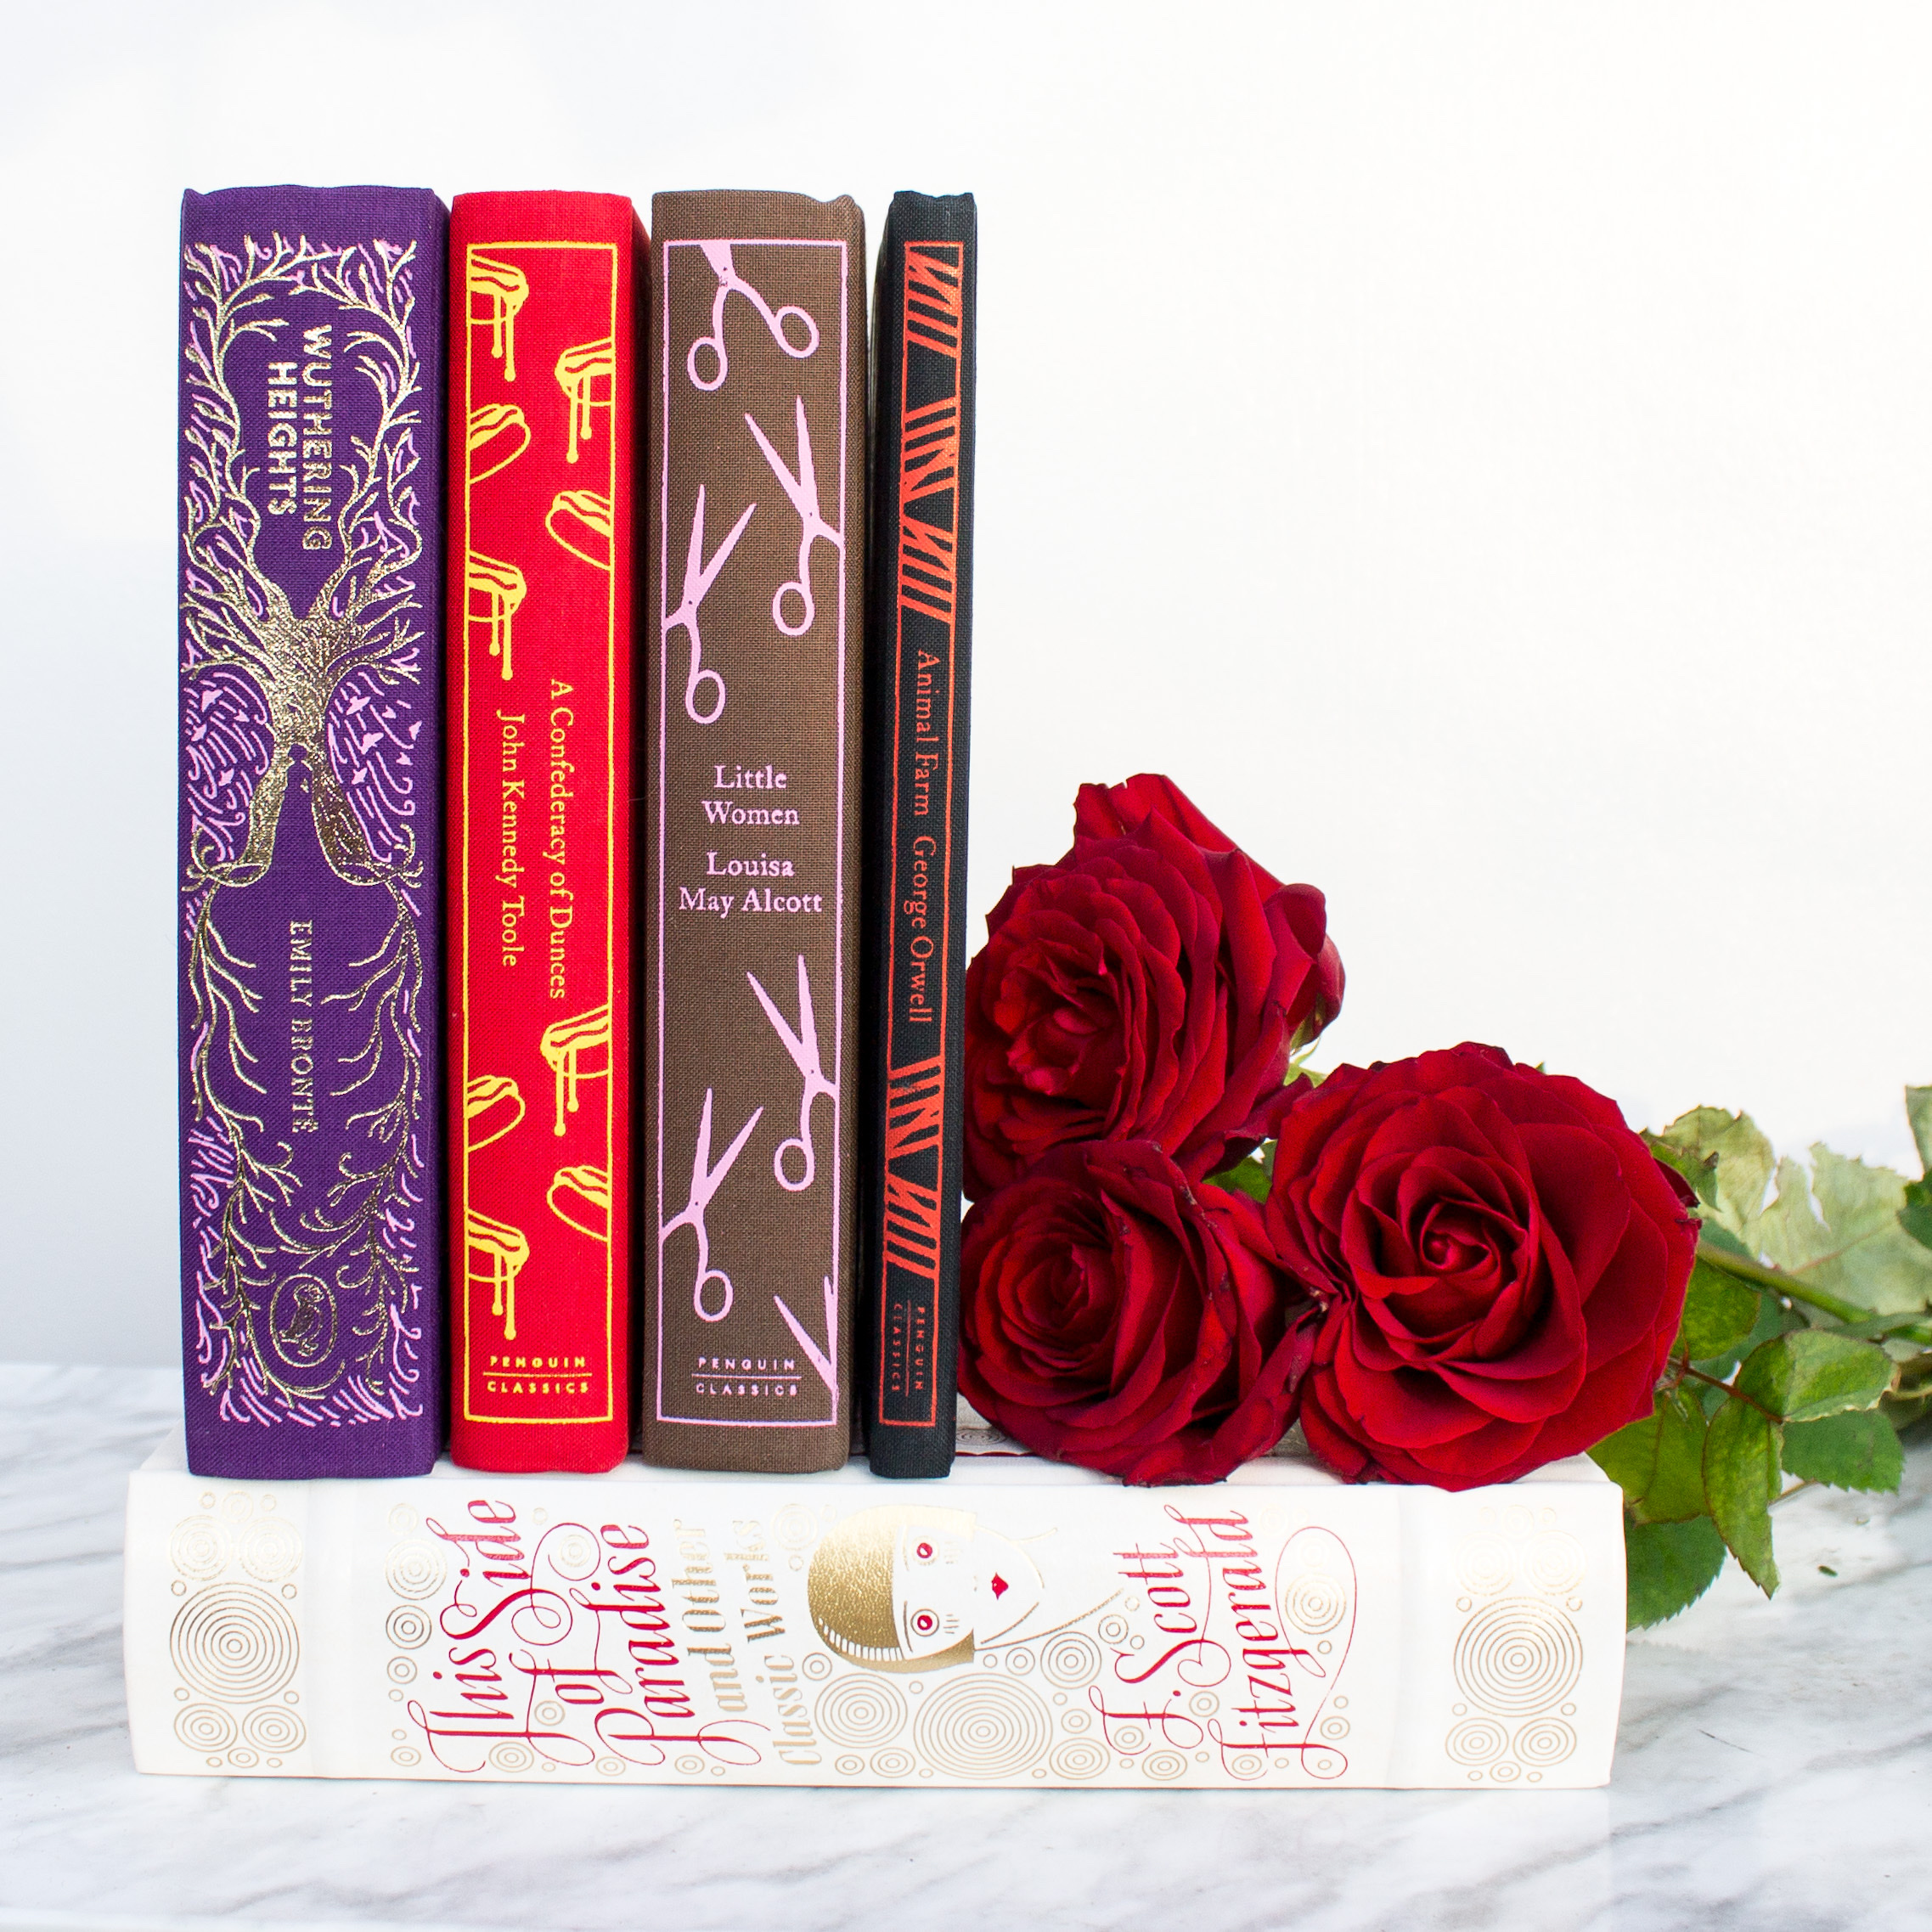 Wuthering Heights, leatherbound and clothbound classic books